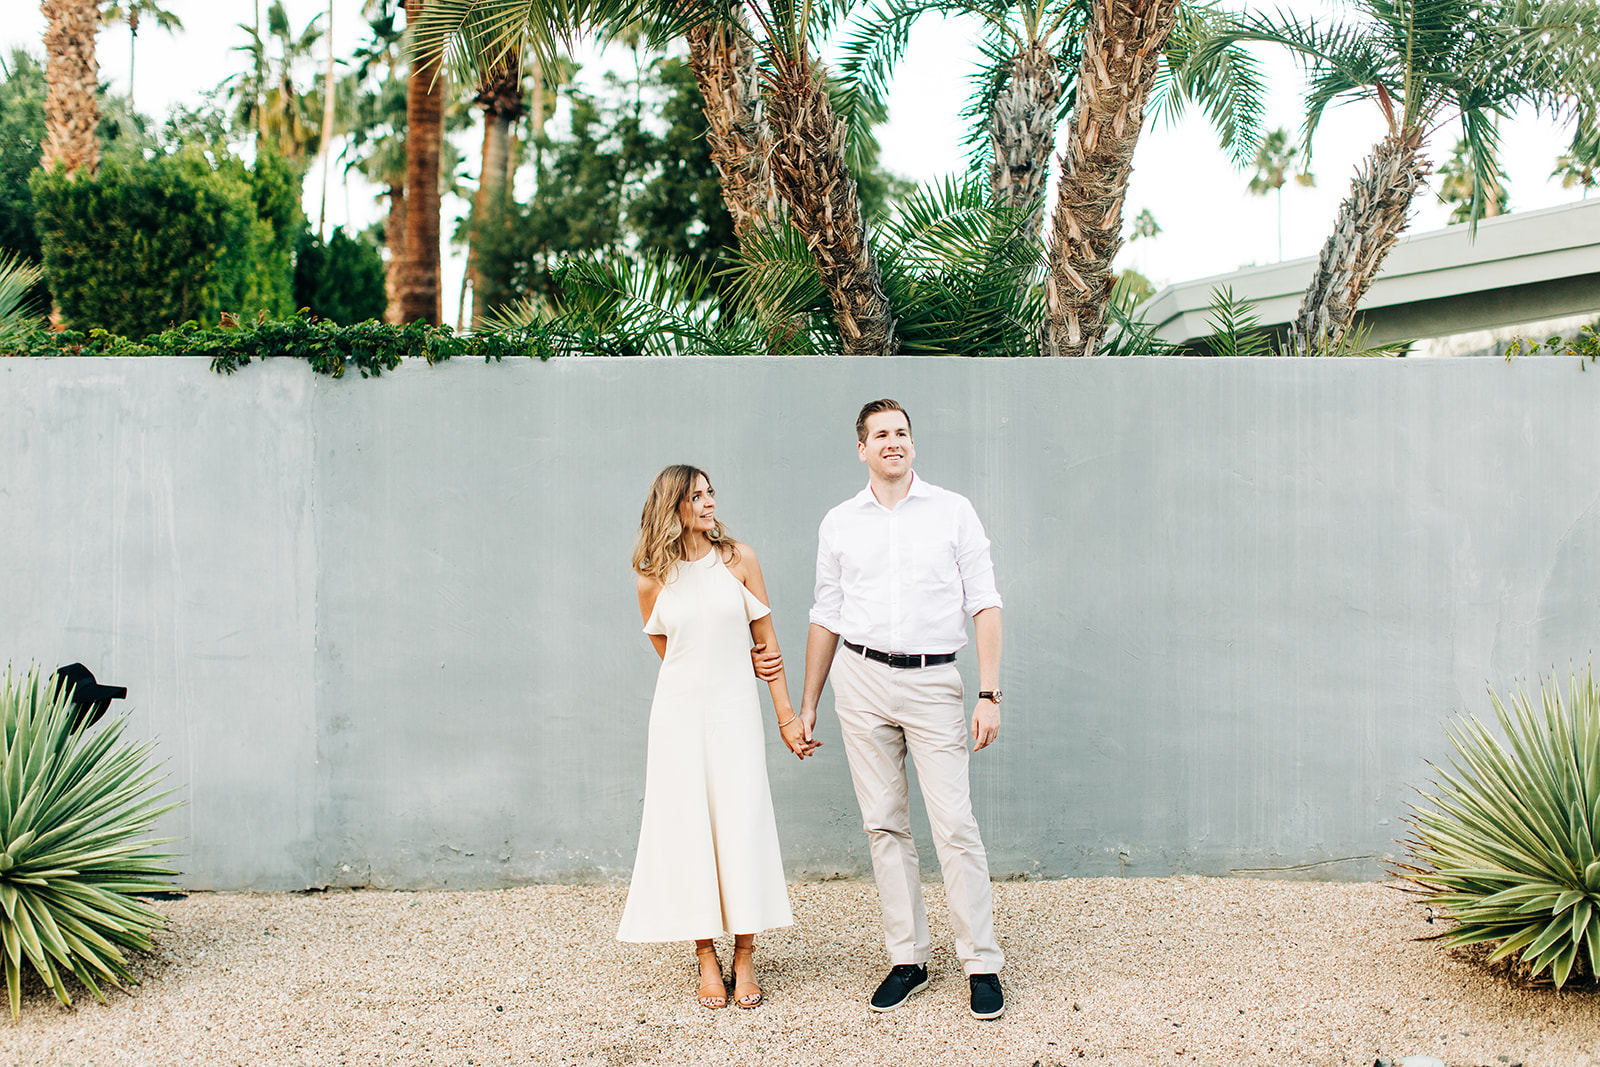 Paulina-Drew_Palm-Springs-Engagement-Photos_Clarisse-Rae_Southern-California-Wedding-Photographer-31